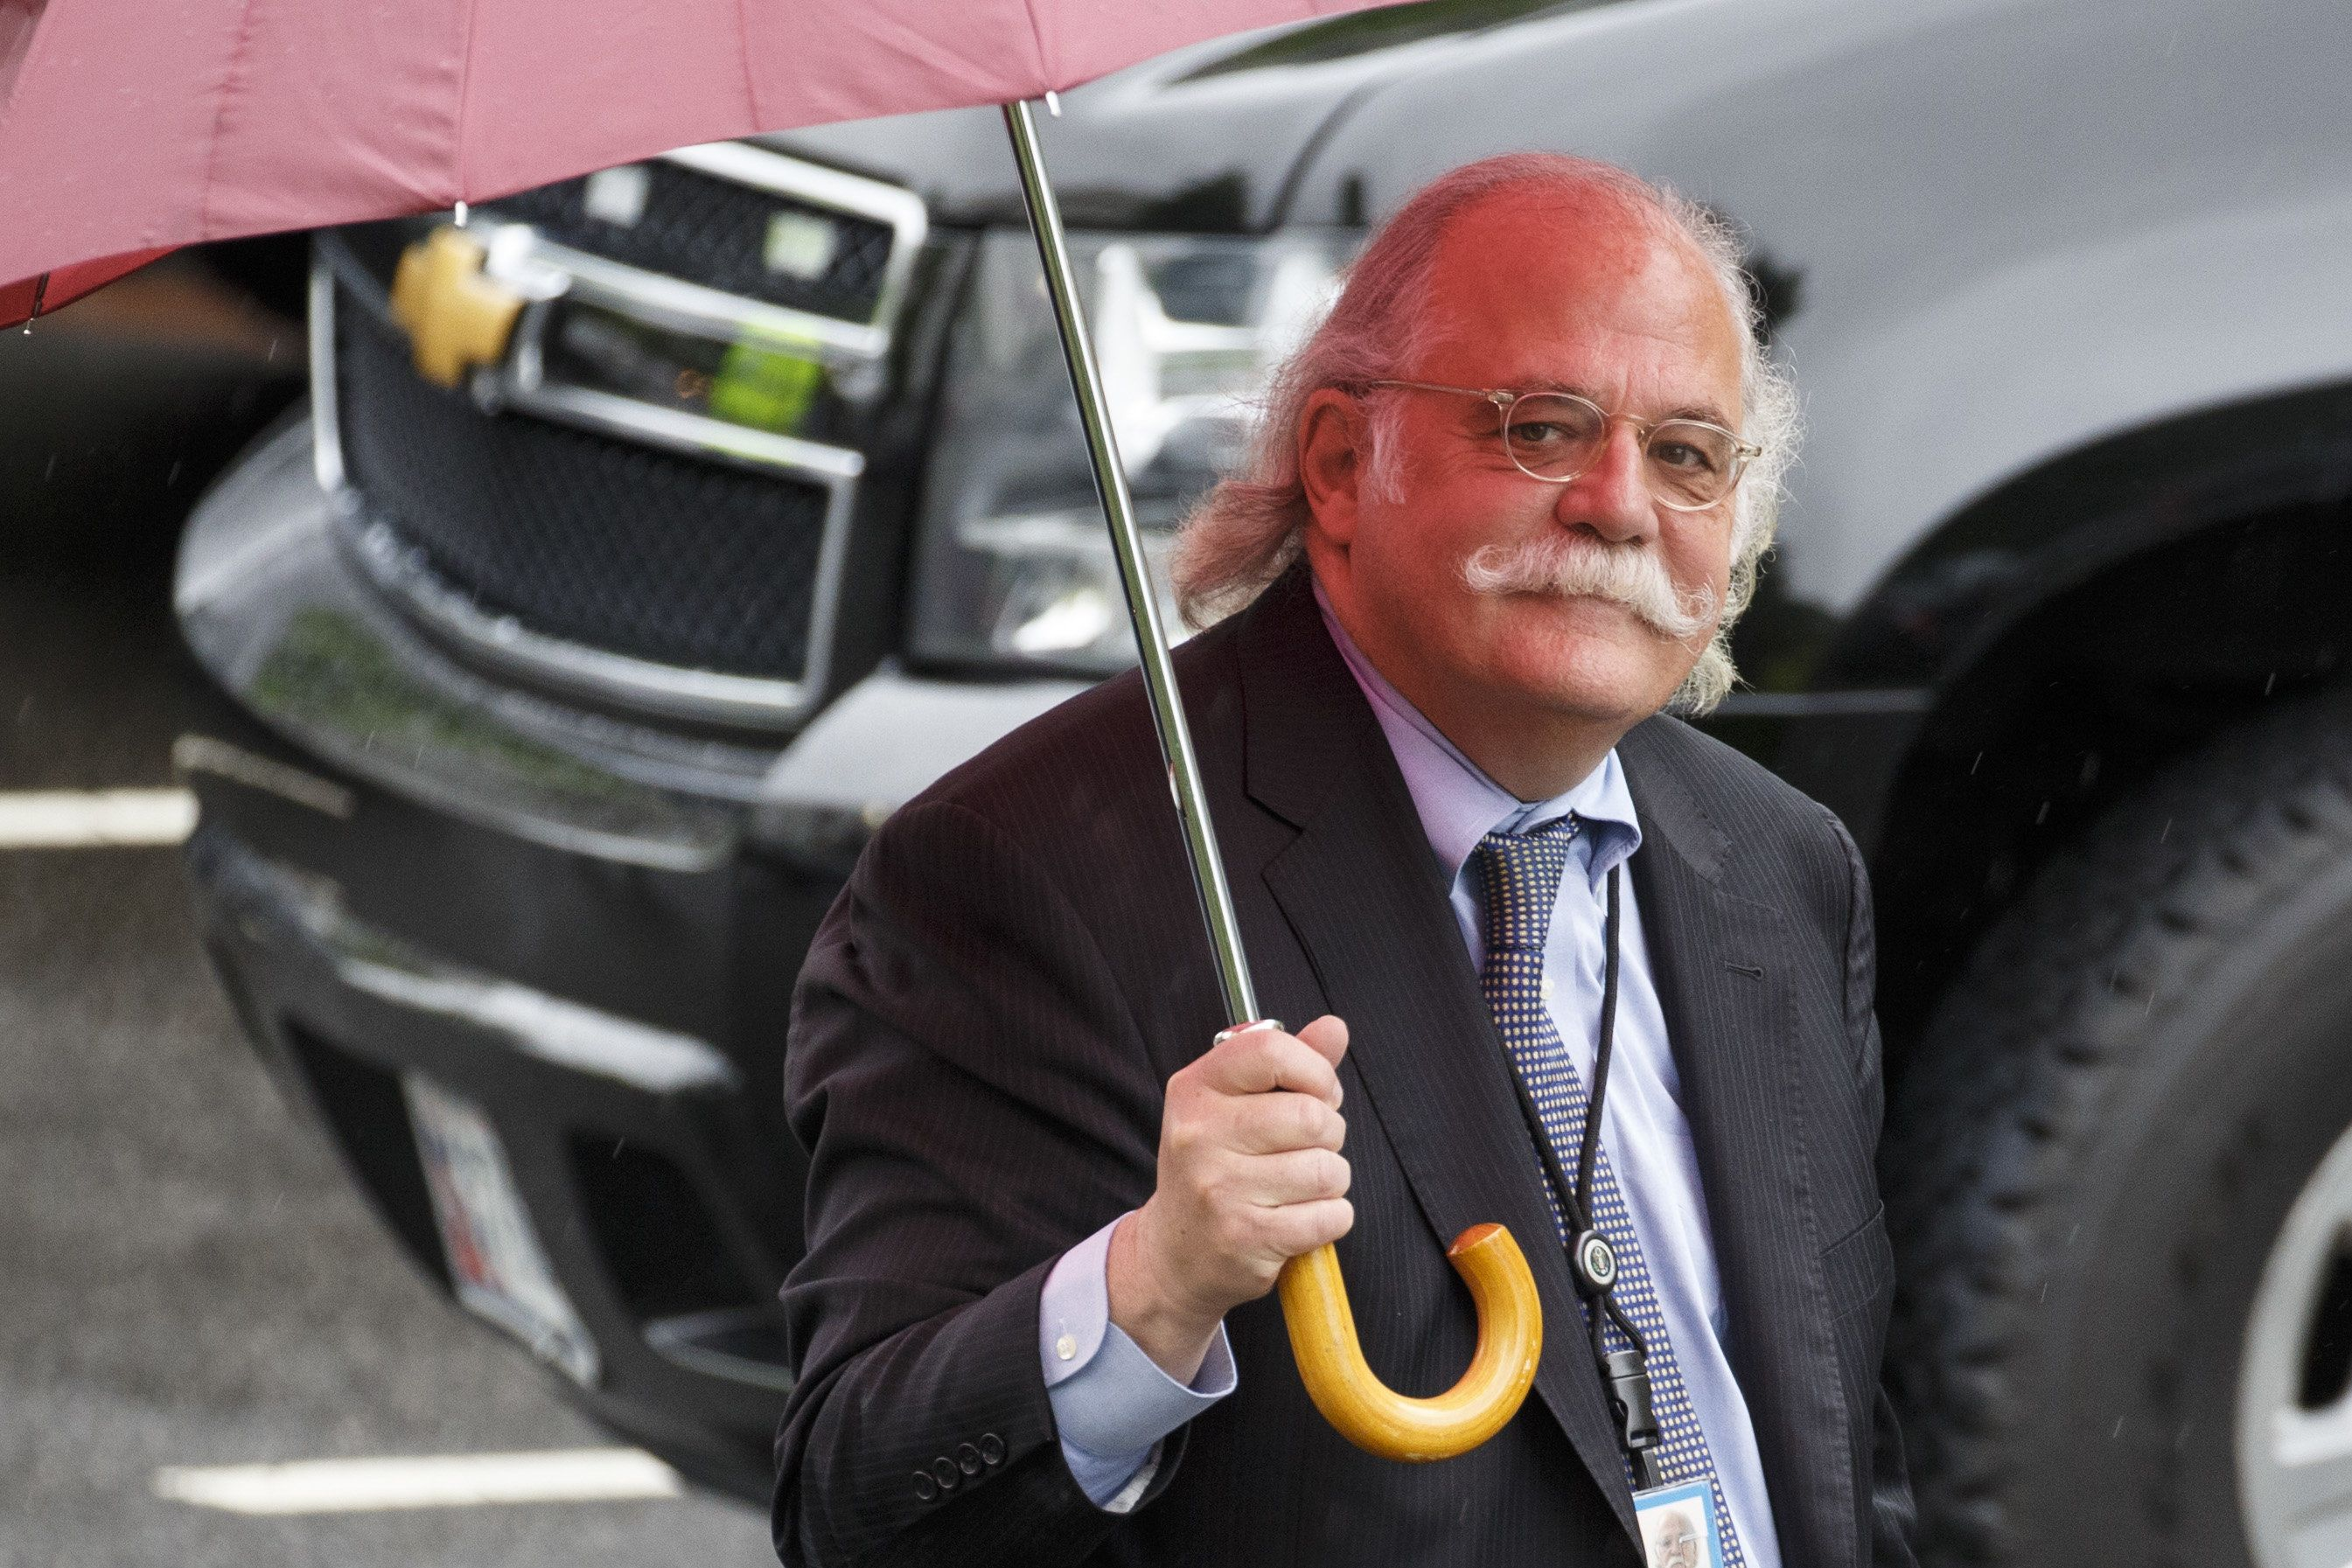 Ty Cobb, White House special counsel, holds an umbrella while walking near the White House in Washington, D.C., U.S., on Thursday, May 17, 2018. President Donald Trump has been escalating his attacks on Robert Mueller and his team since March after months of restraint at the urging of Cobb, who announced his departure earlier this month. Photographer: Joshua Roberts/Bloomberg via Getty Images